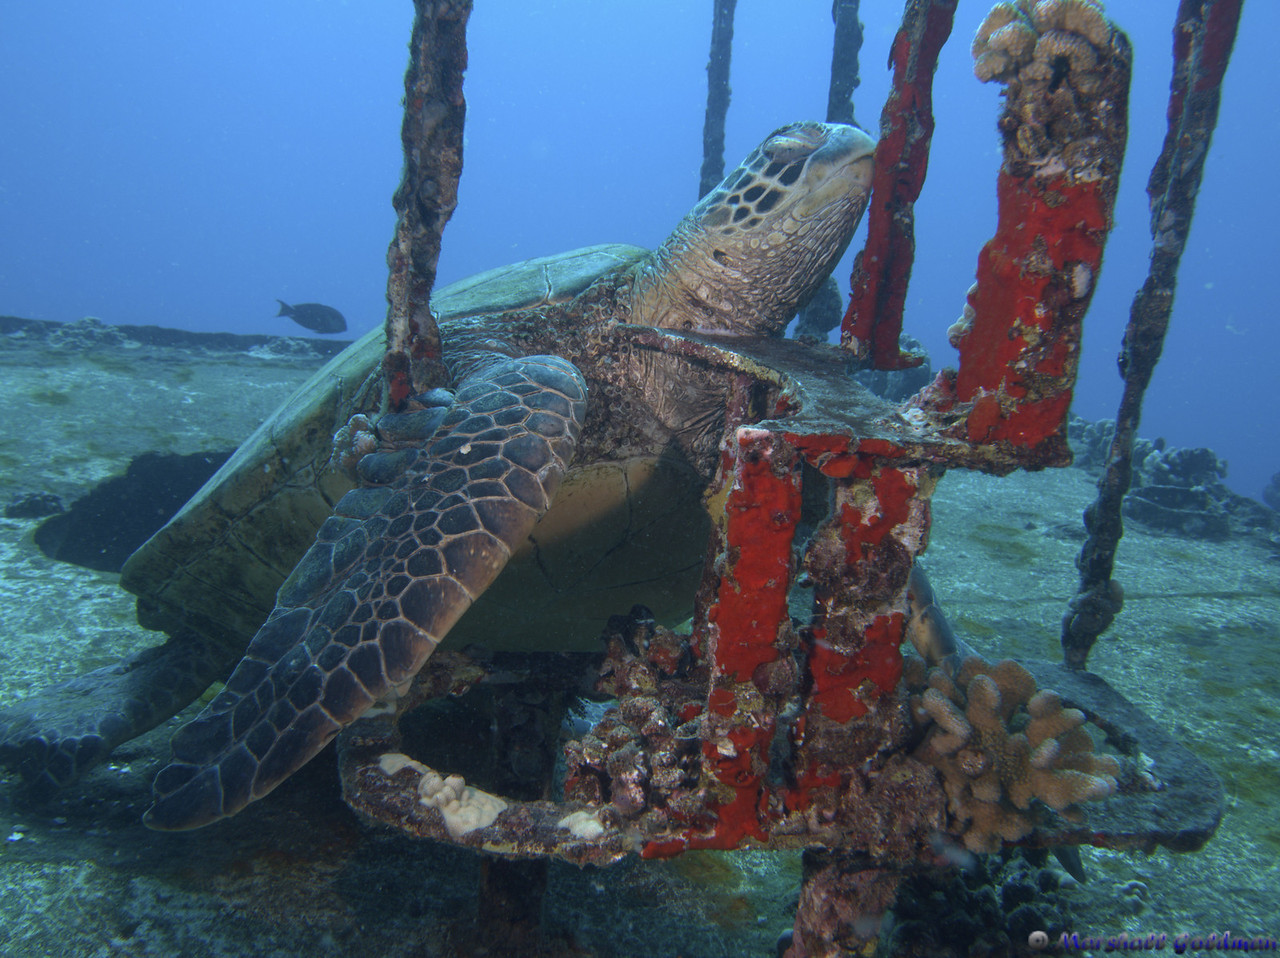 Sleeping Turtle at St Anthony's Wreck